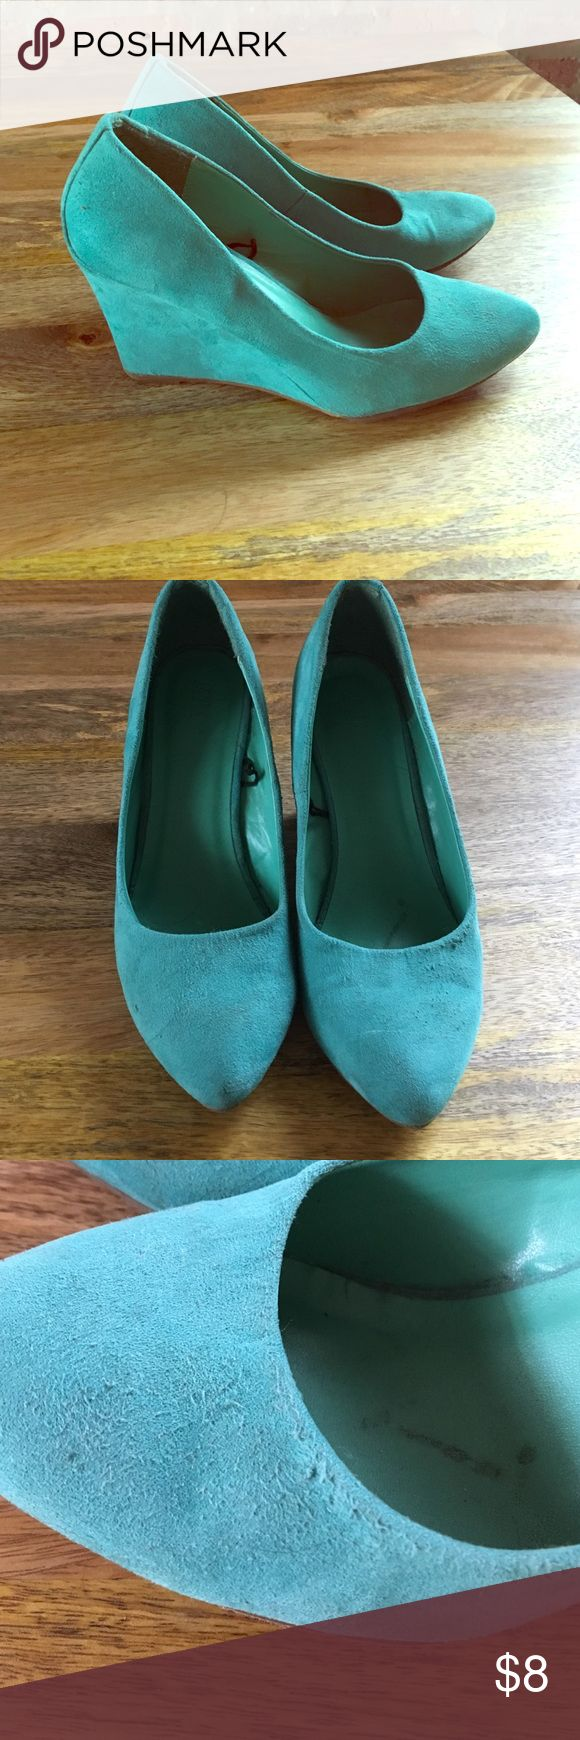 "Forever 21 Suede Turquoise Wedge Heel - 7.5 Super cute. Heel is 3"" some wear and tear. Fits on smaller side of a 7.5. Forever 21 Shoes Wedges"